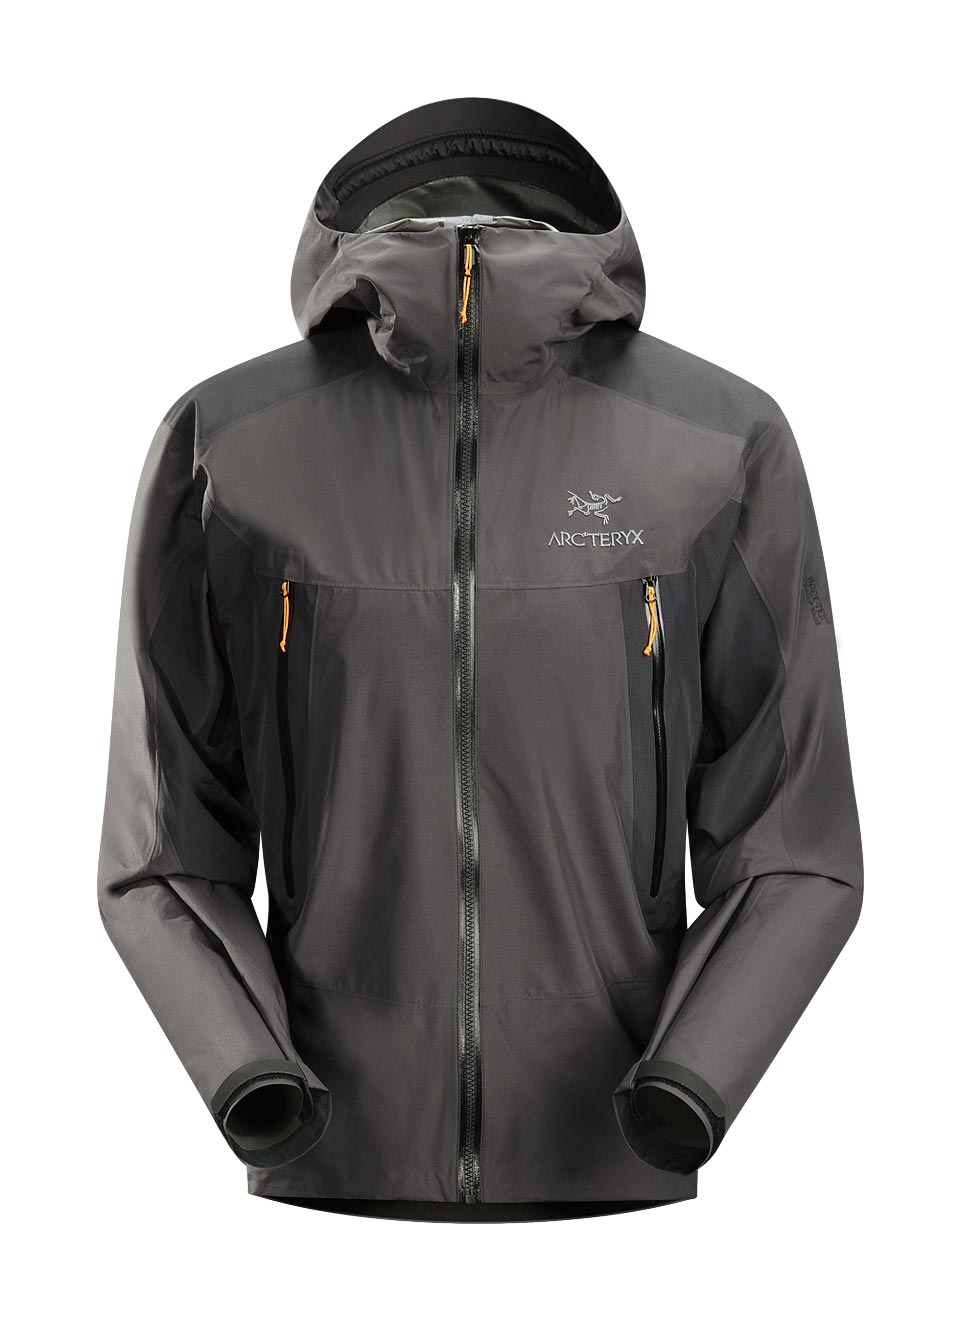 Arcteryx Black bird Alpha SL Hybrid Jacket - New